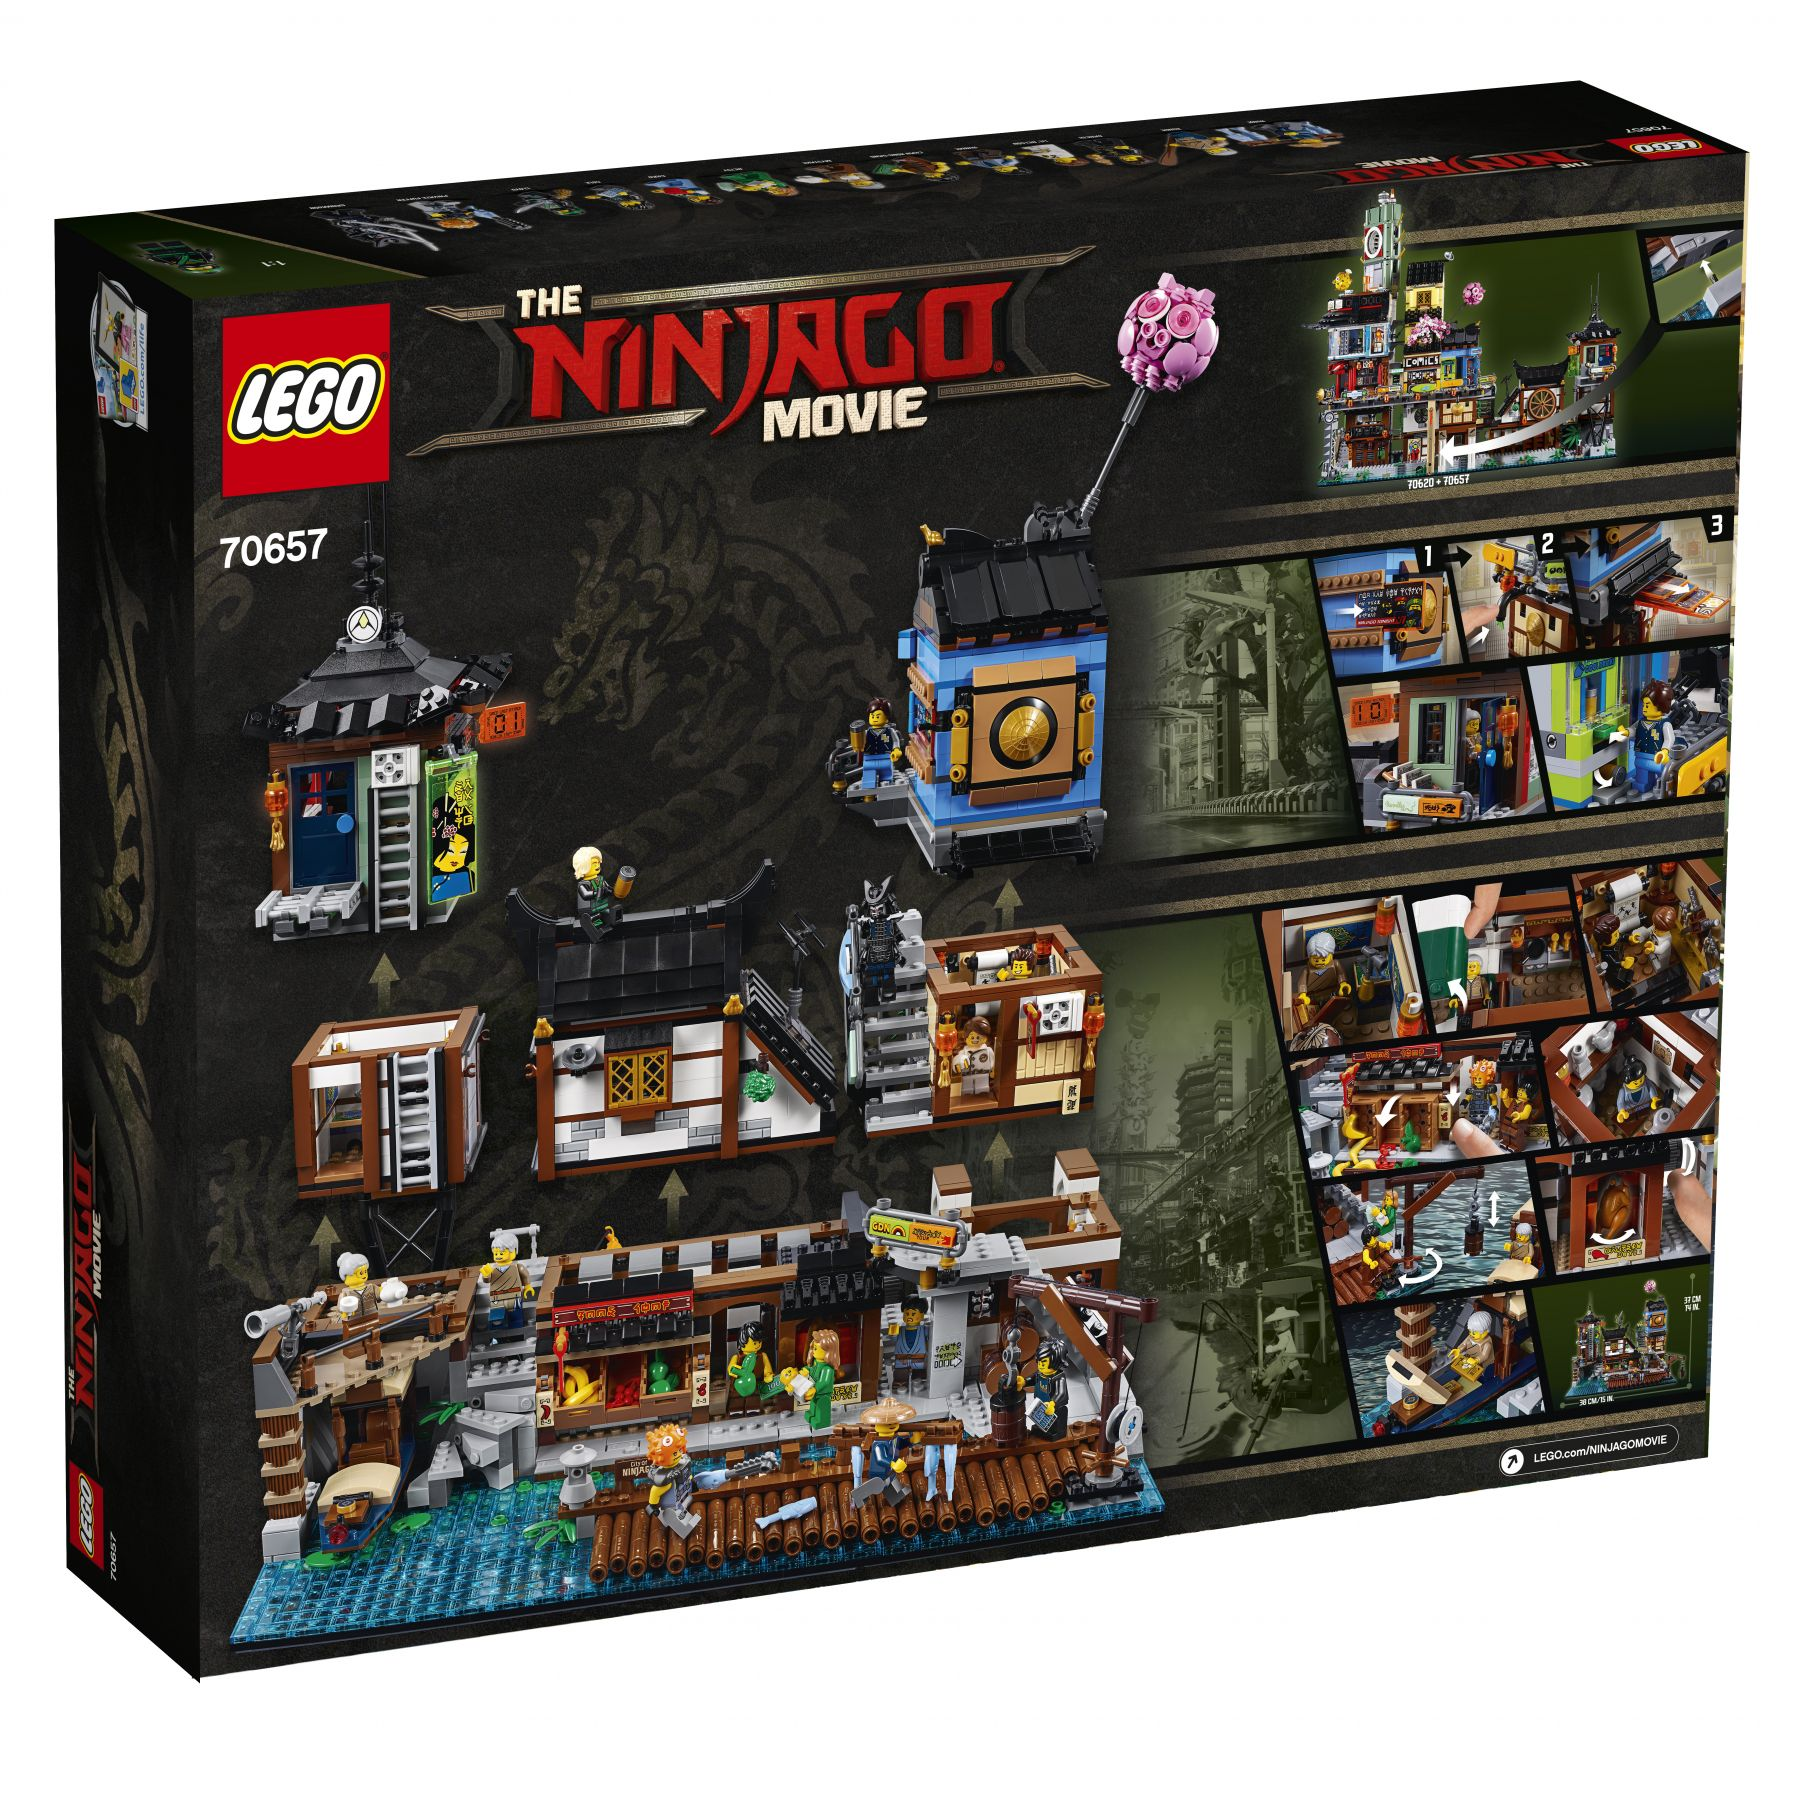 LEGO The LEGO Ninjago Movie 70657 Ninjago City Hafen LEGO_70657_Ninjago_City_Hafen_box_back.jpg